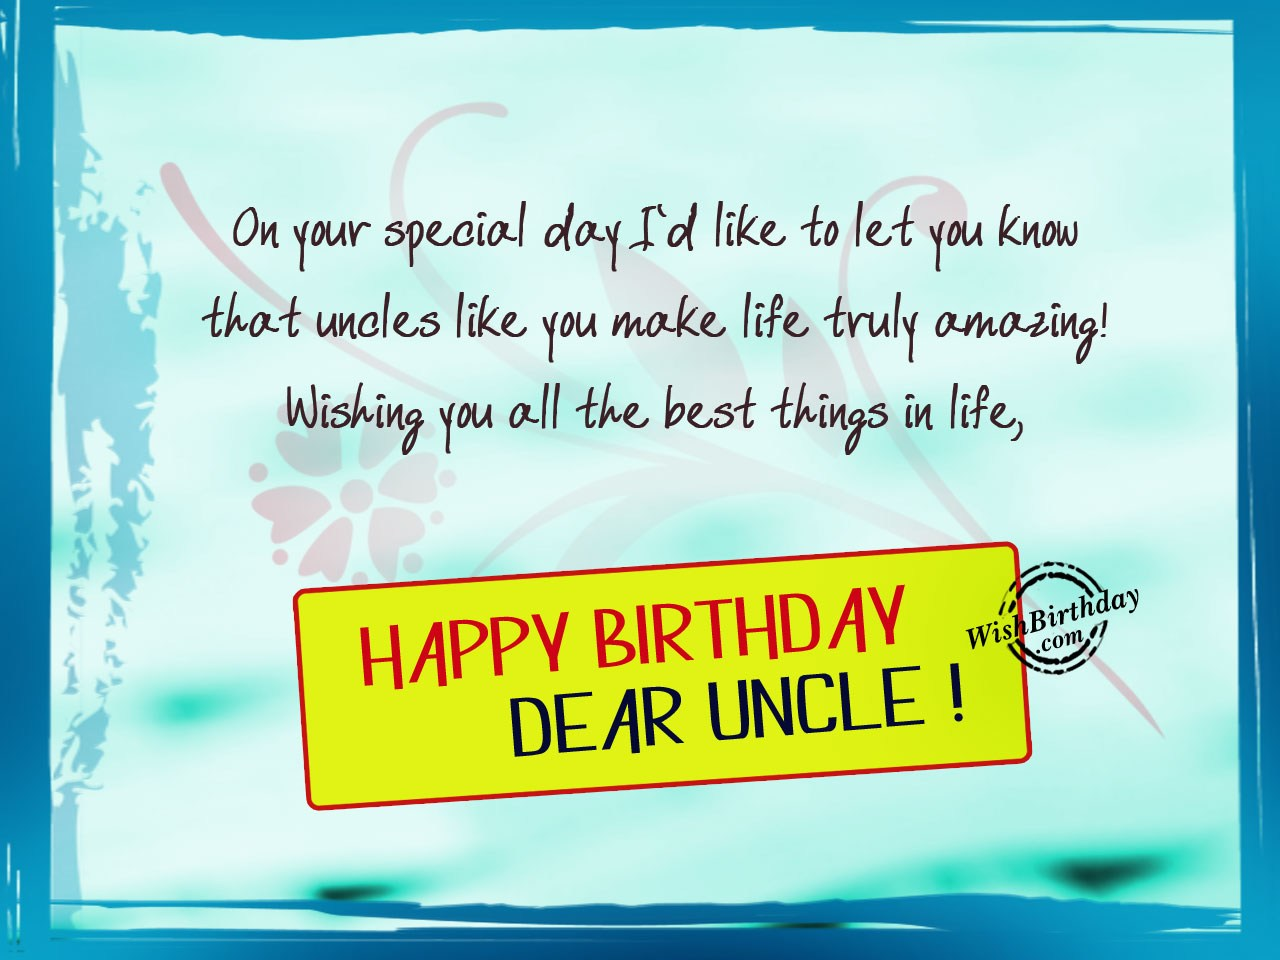 birthday wishes for uncle birthday images pictures